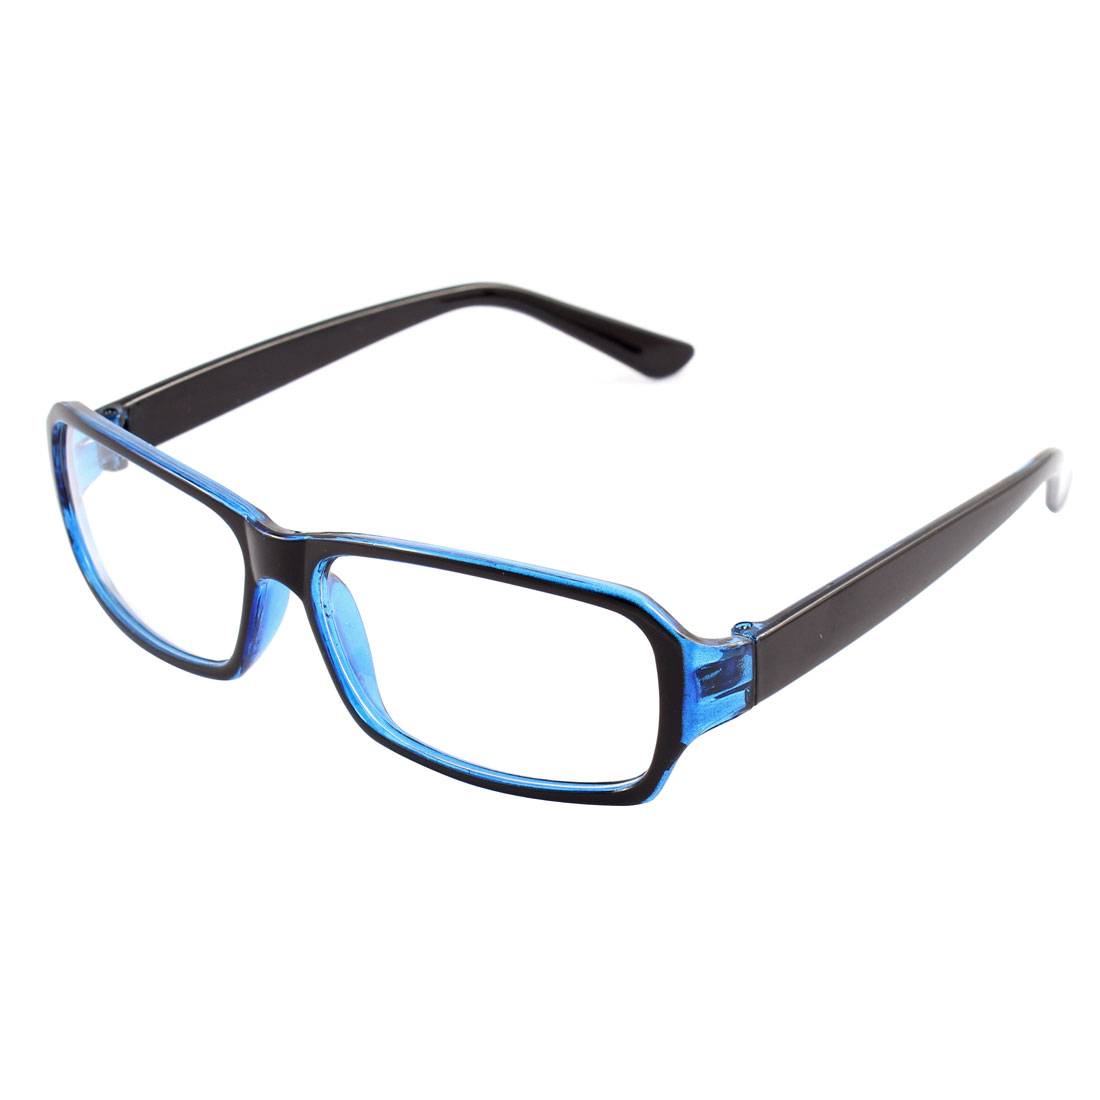 Unisex Full Rim Slim Temple Eyeglasses Eyewear Spectacles Black Blue